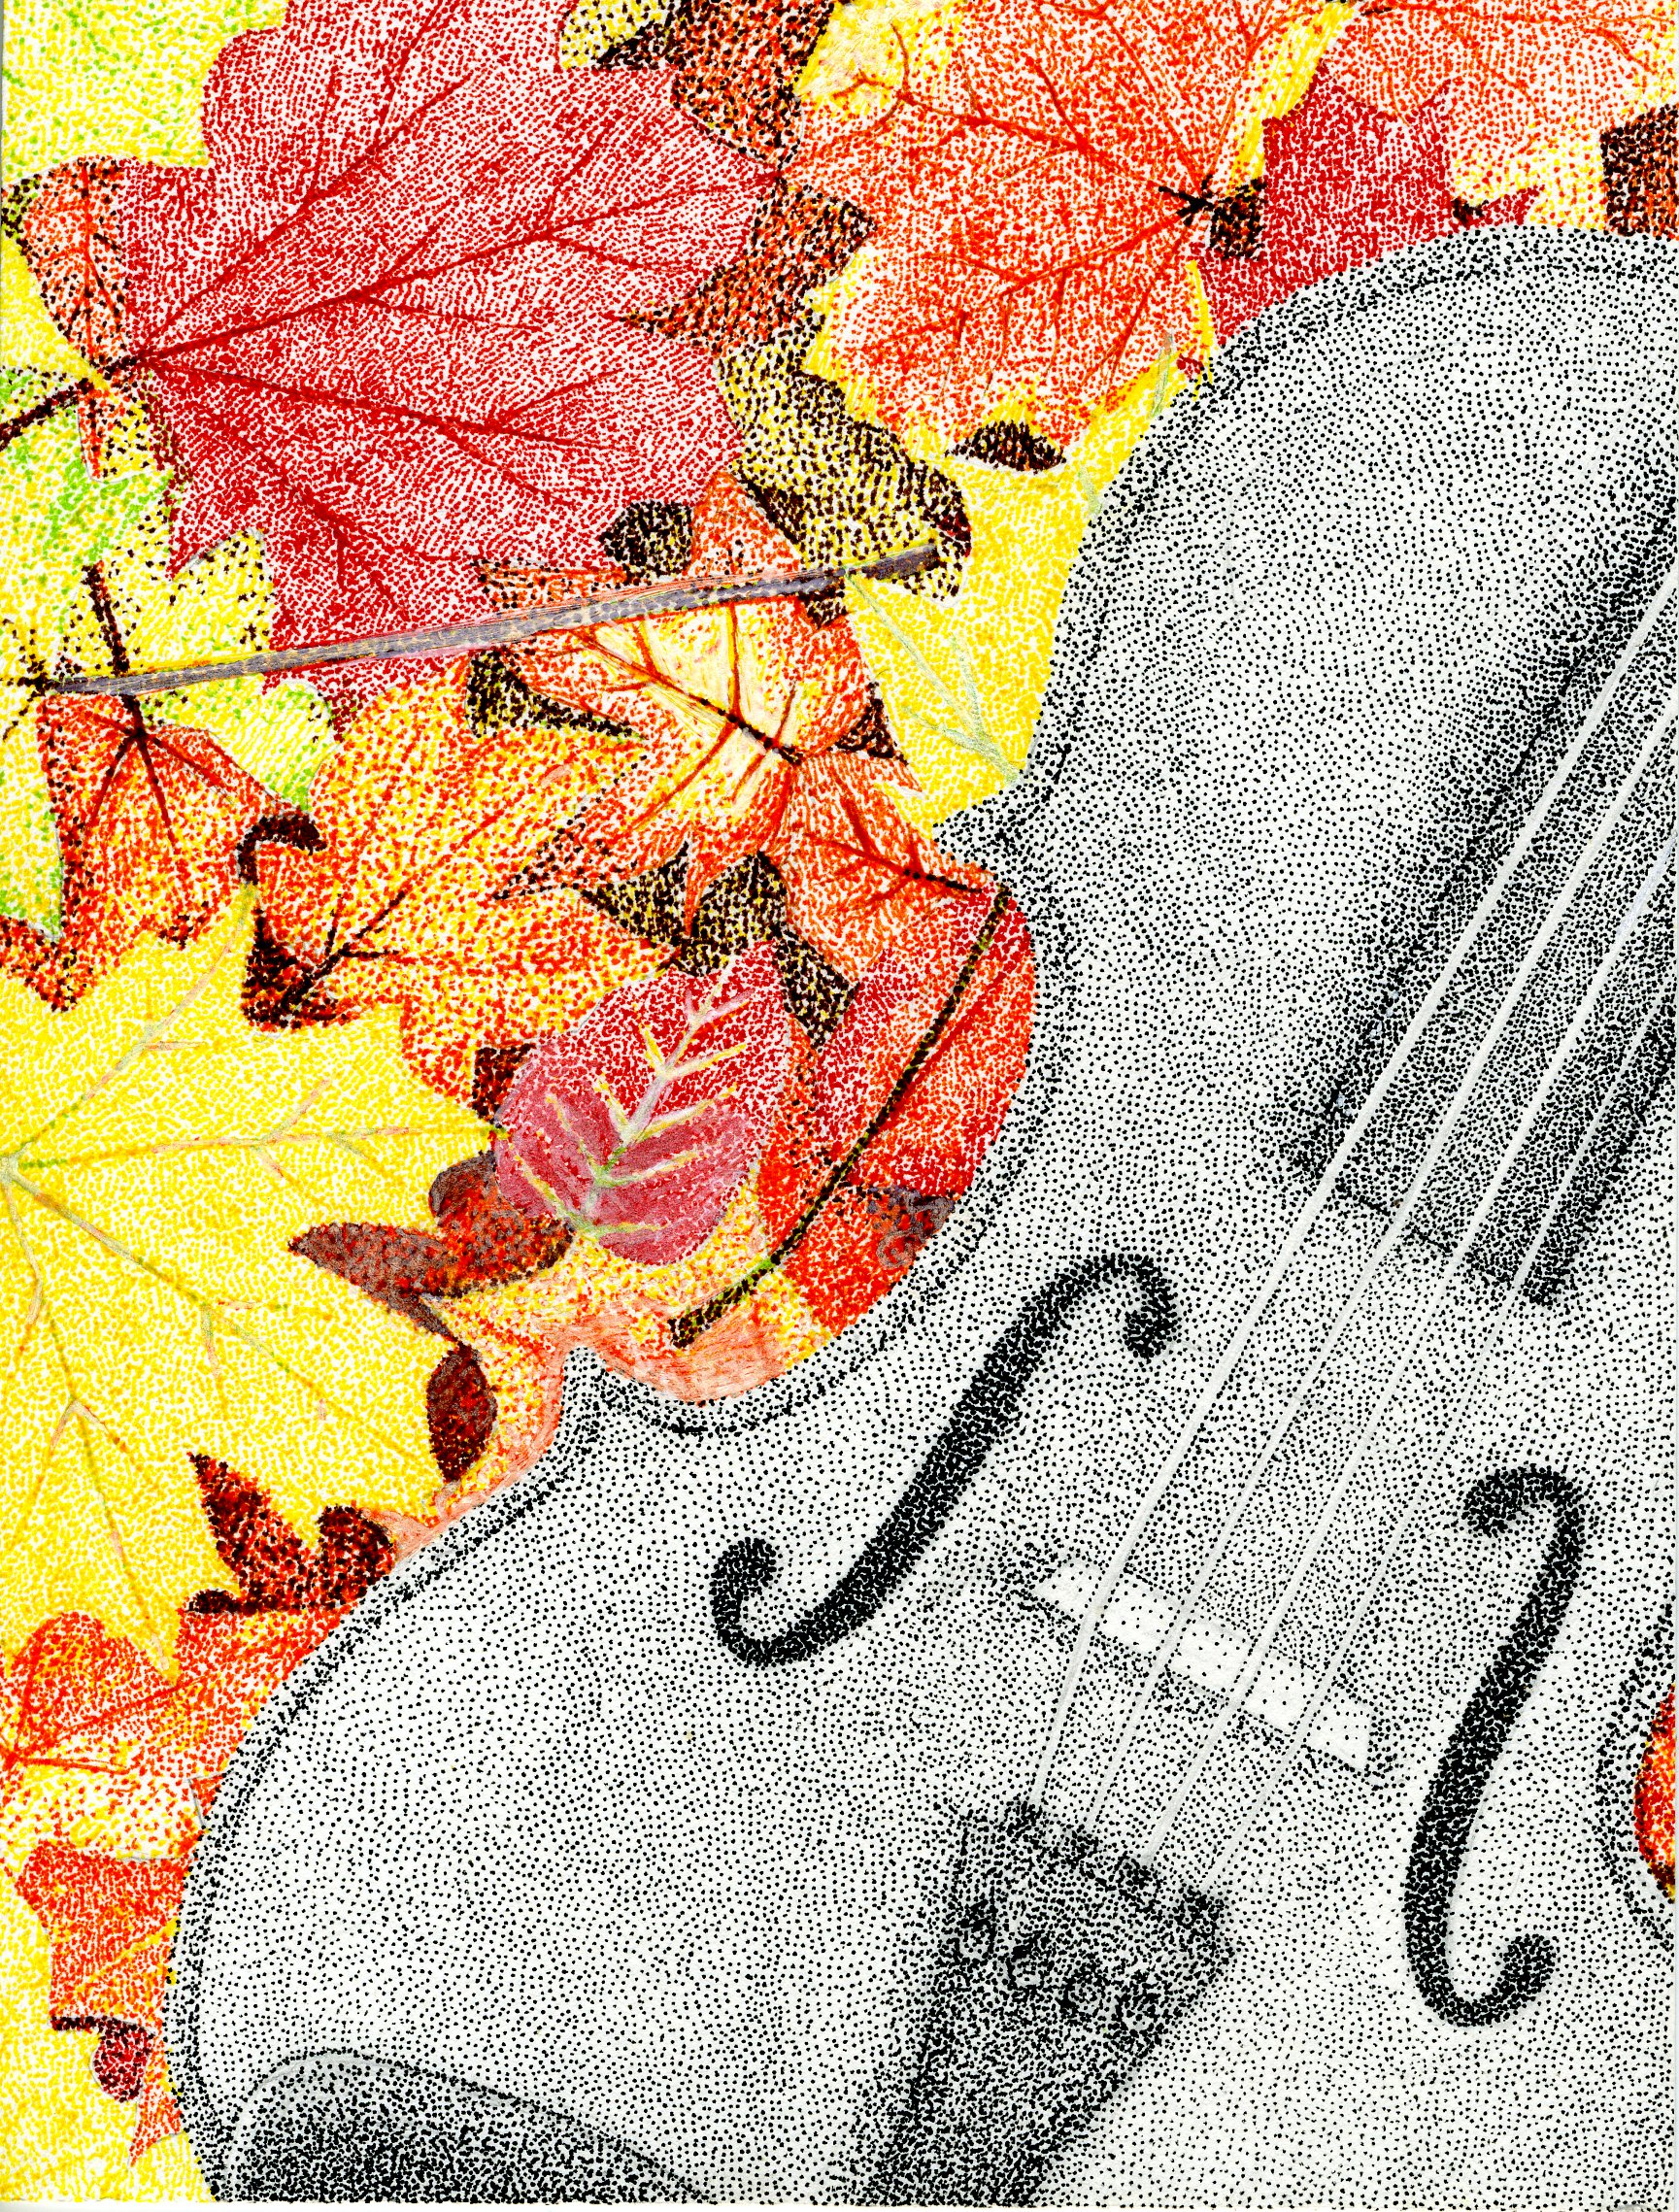 pen drawing of a violin in autumn leaves by Dominique Avendano